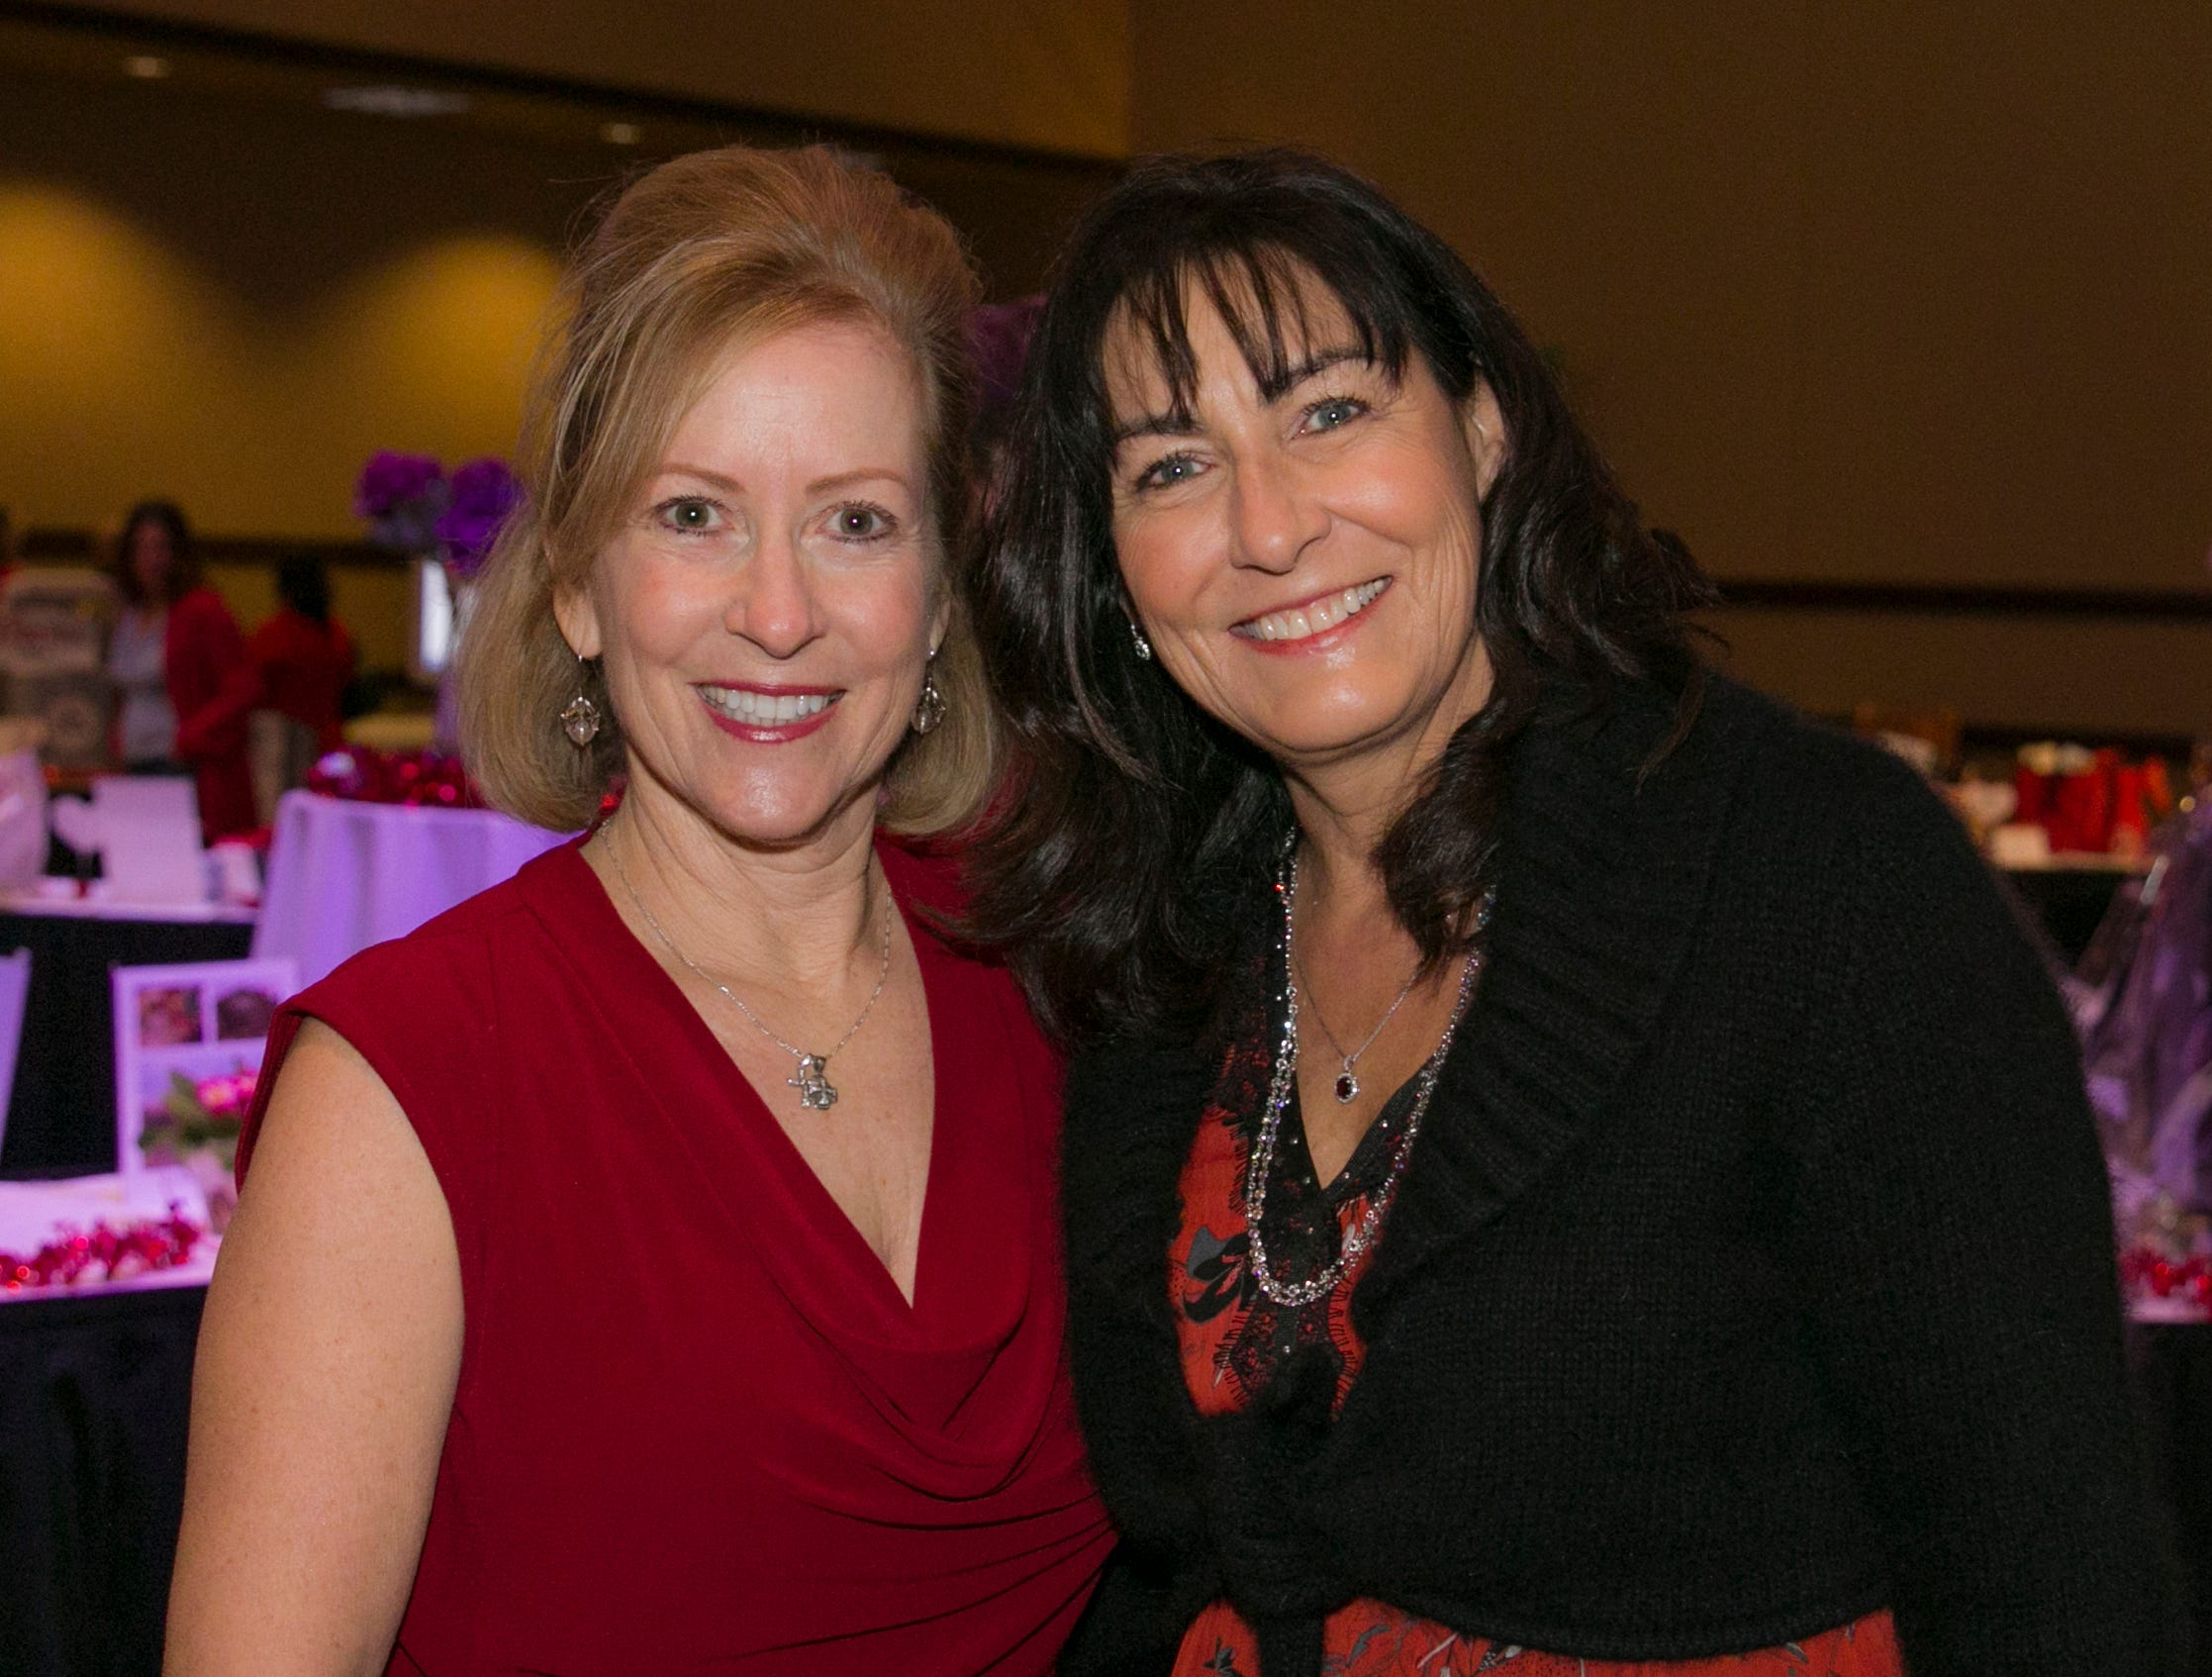 Sue Foltz and Nadine Winn during the 15th Annual Go Red for Women Luncheon on Friday night,March 1, 2019 held at the downtown Reno Ballroom.